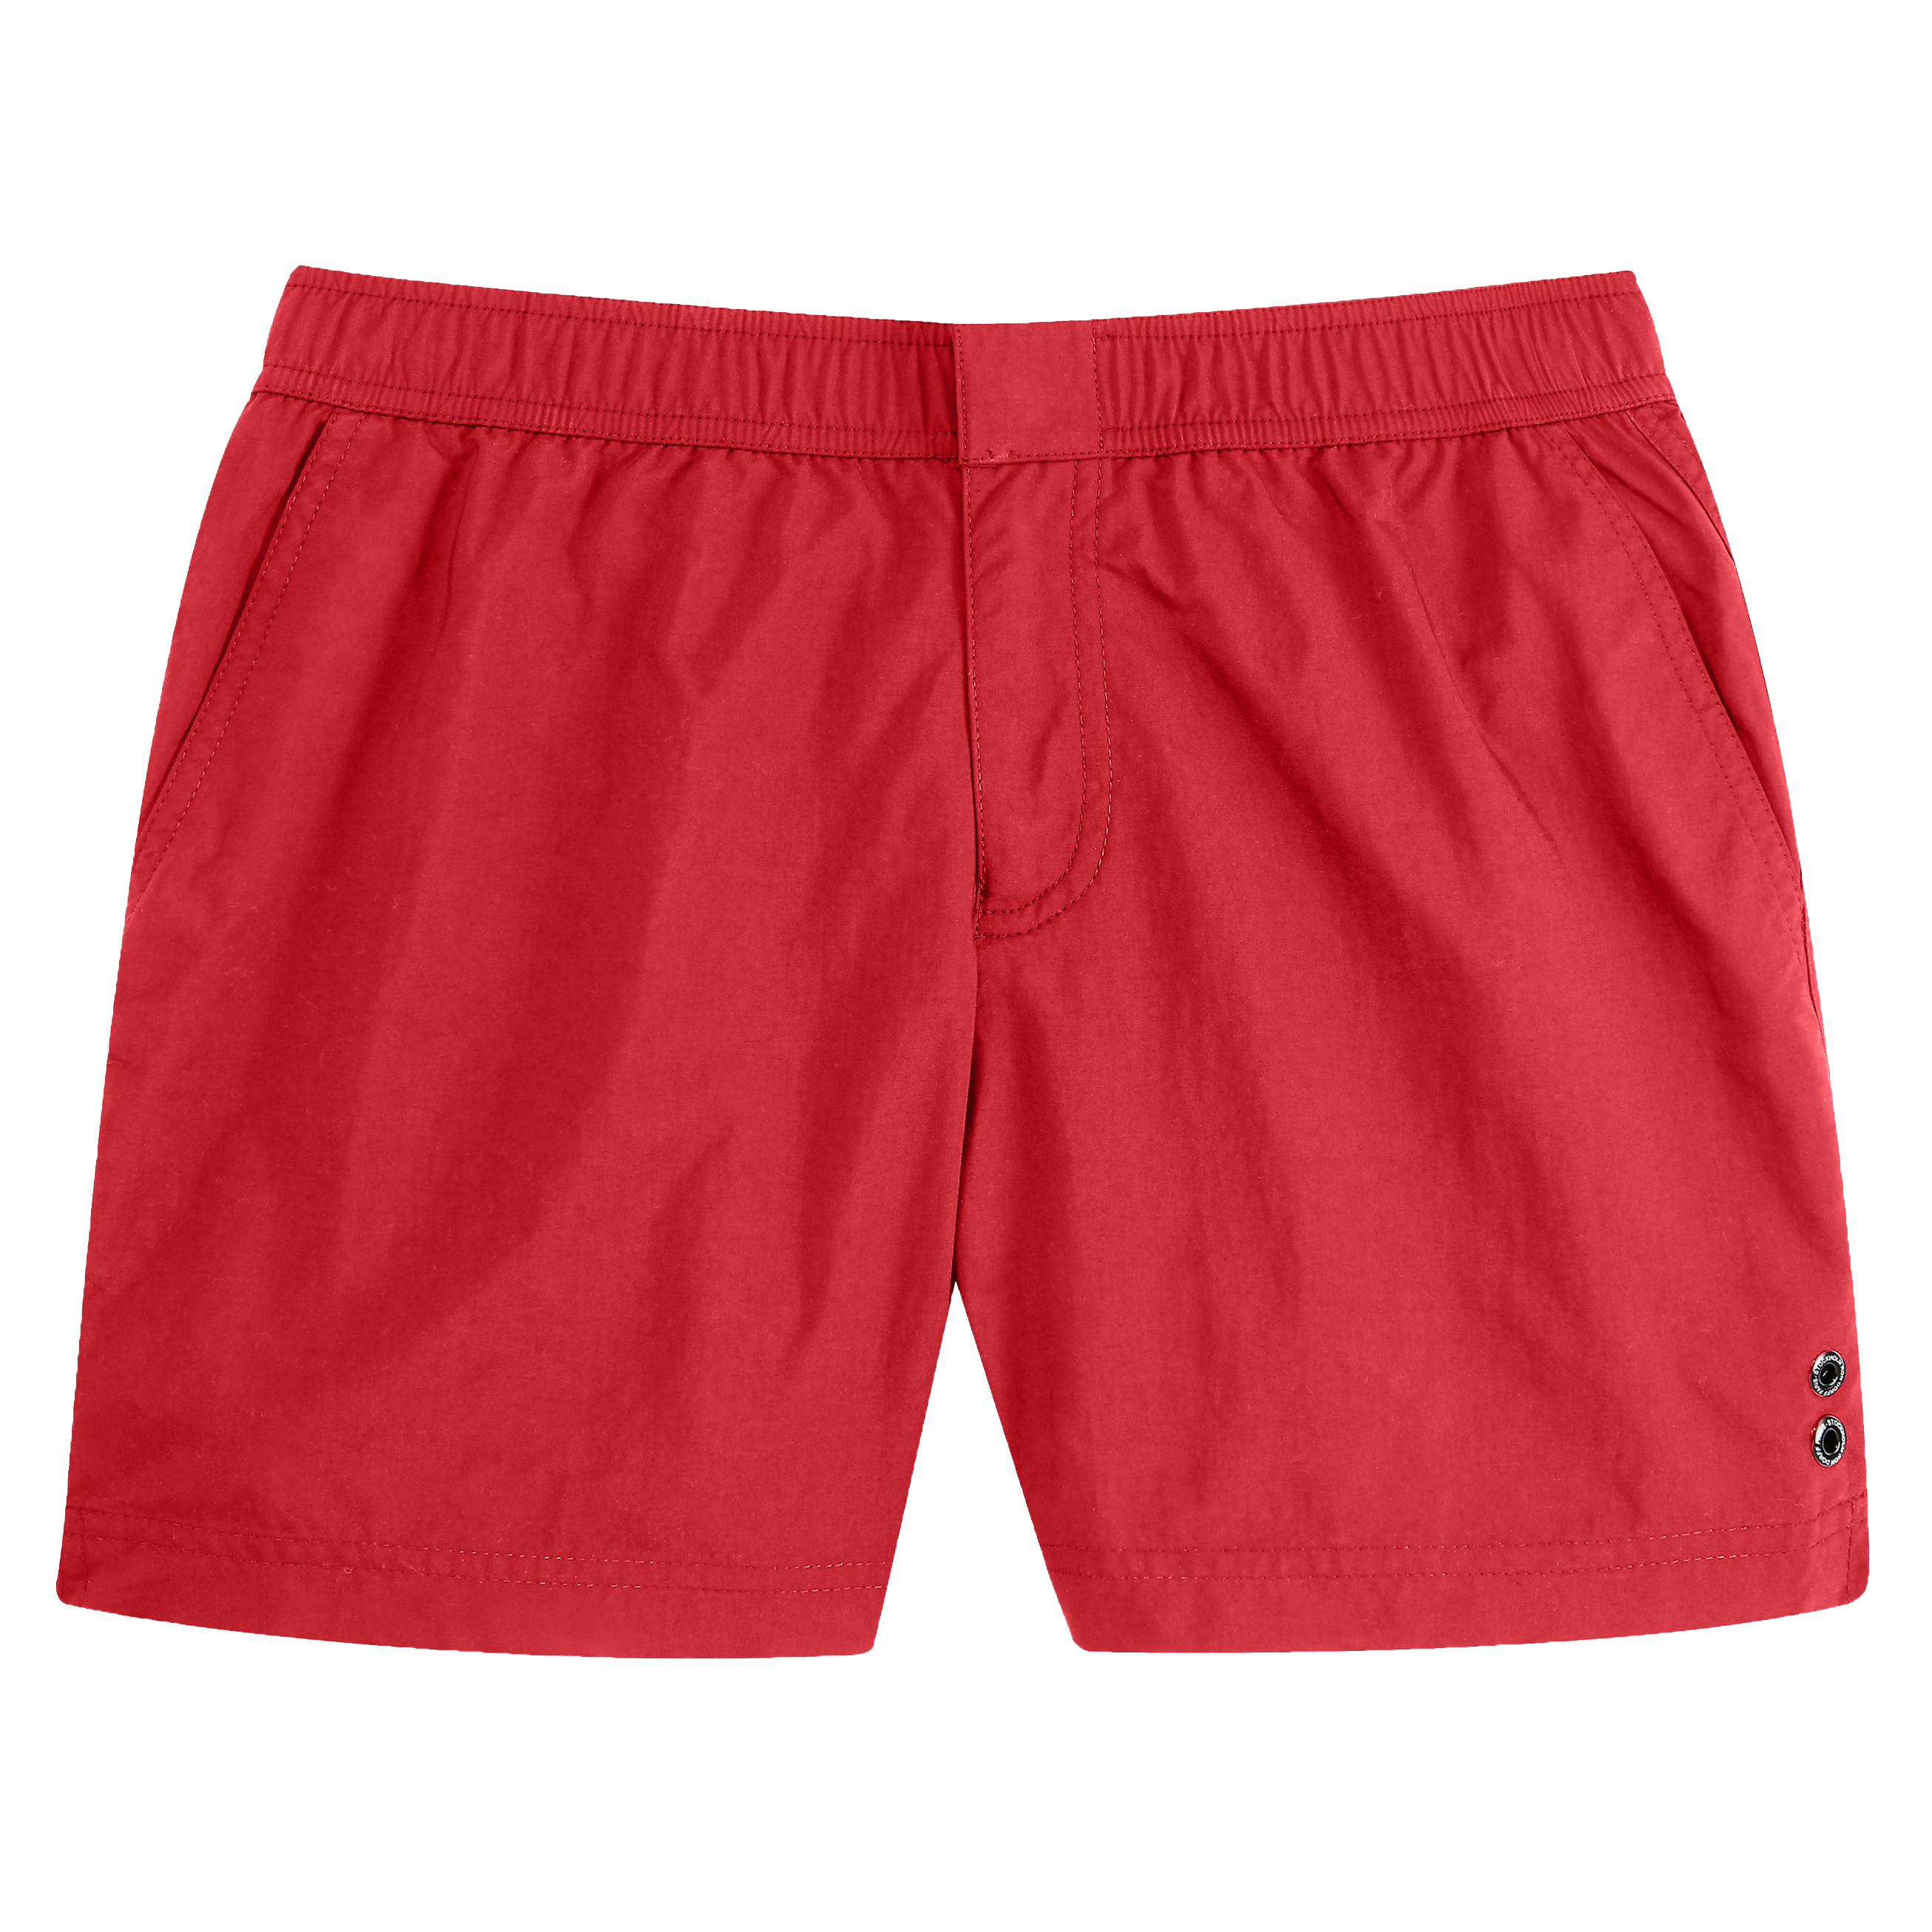 4b2b2dbf70 Ron Dorff SwimGym Shorts | The Practical Man